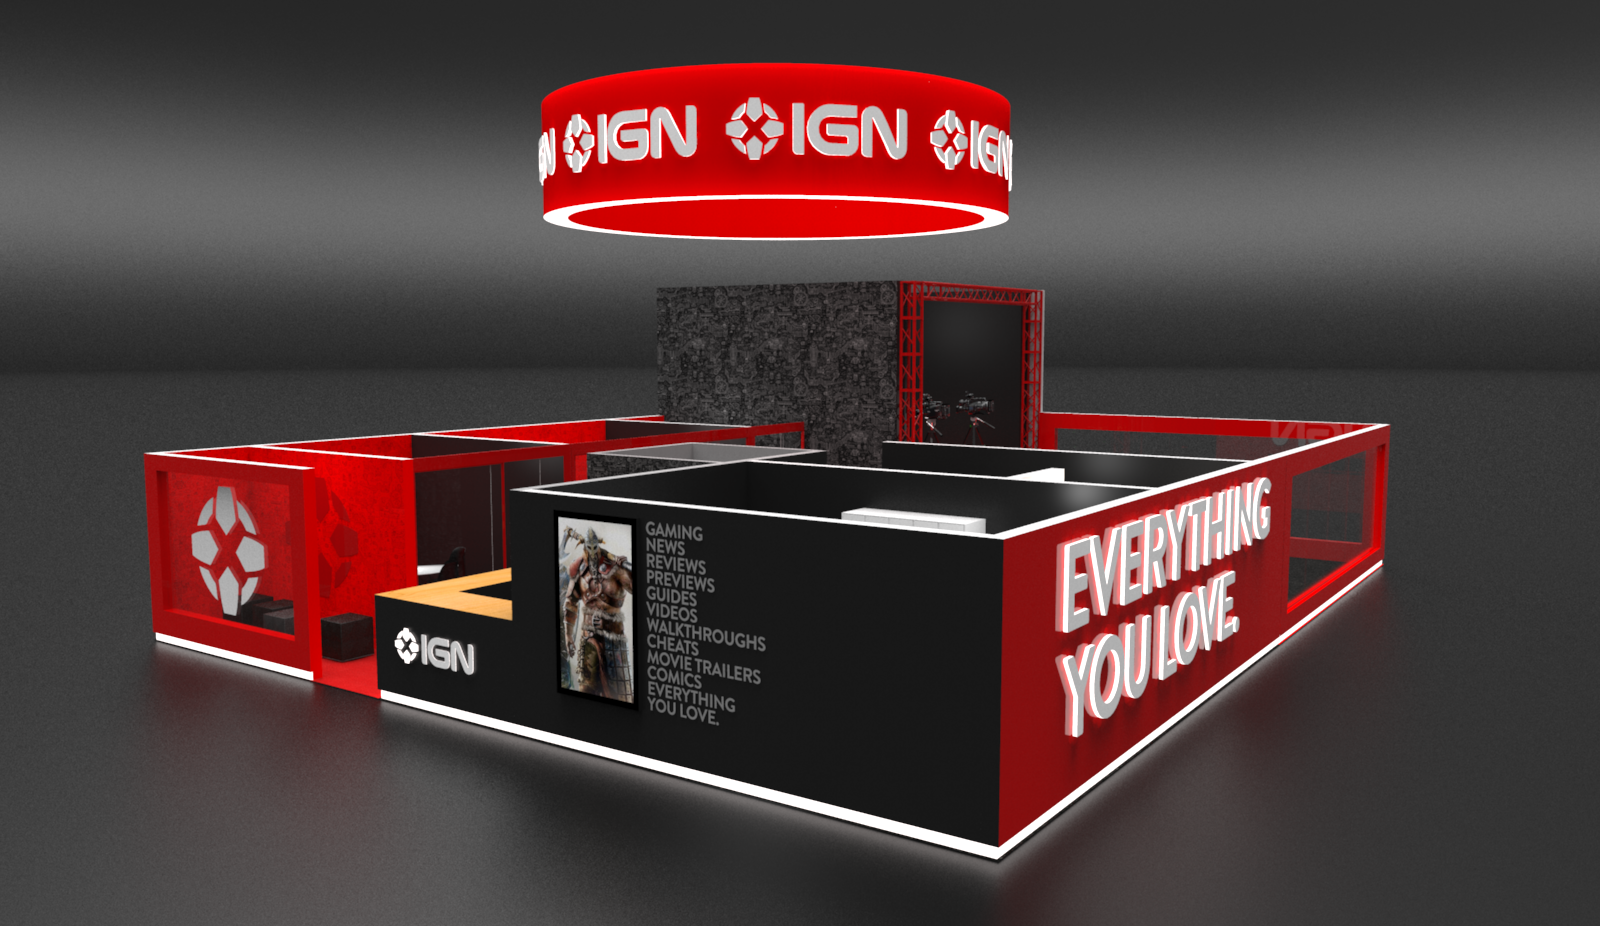 IGN_E3_Booth_R3_Opt2.14